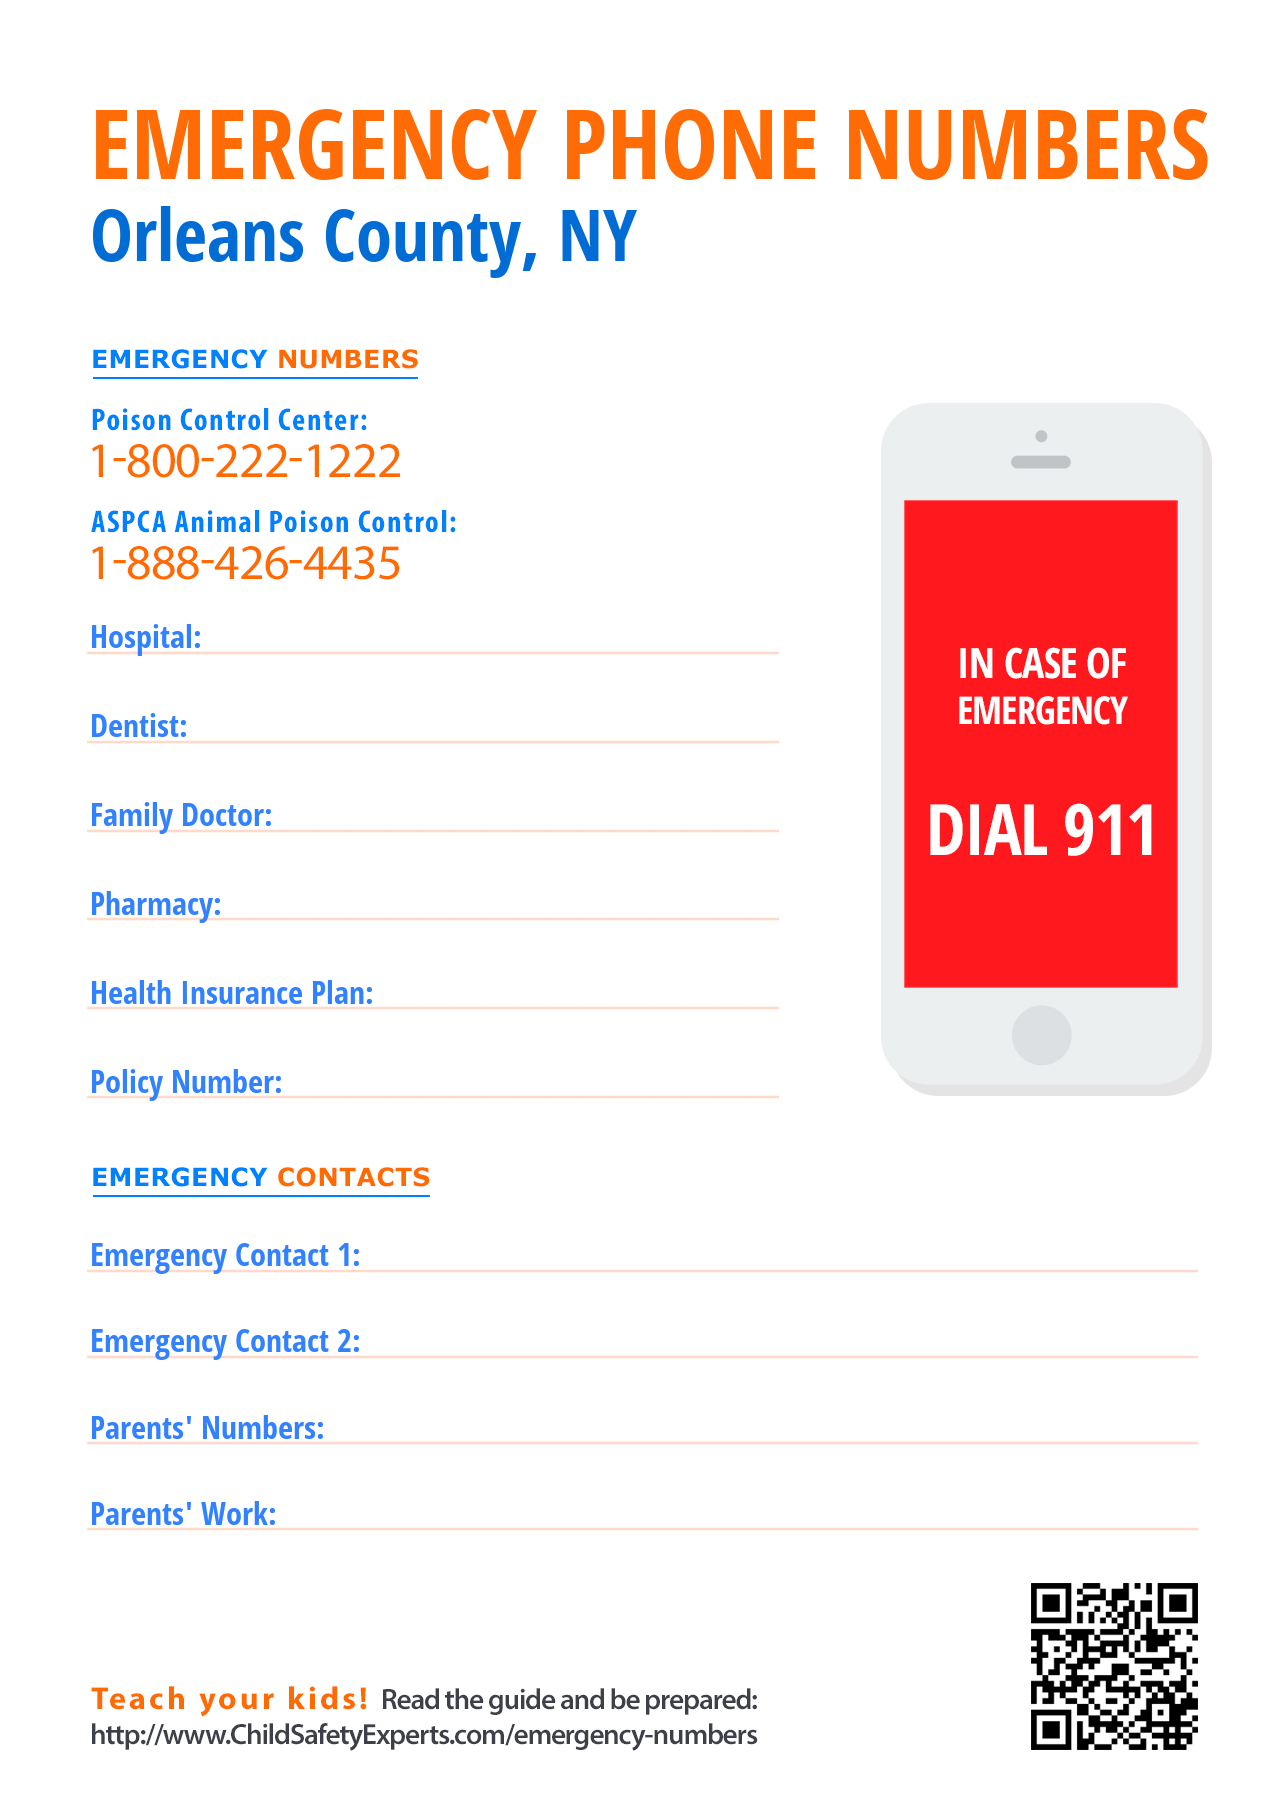 Important emergency phone numbers in Orleans County, New York